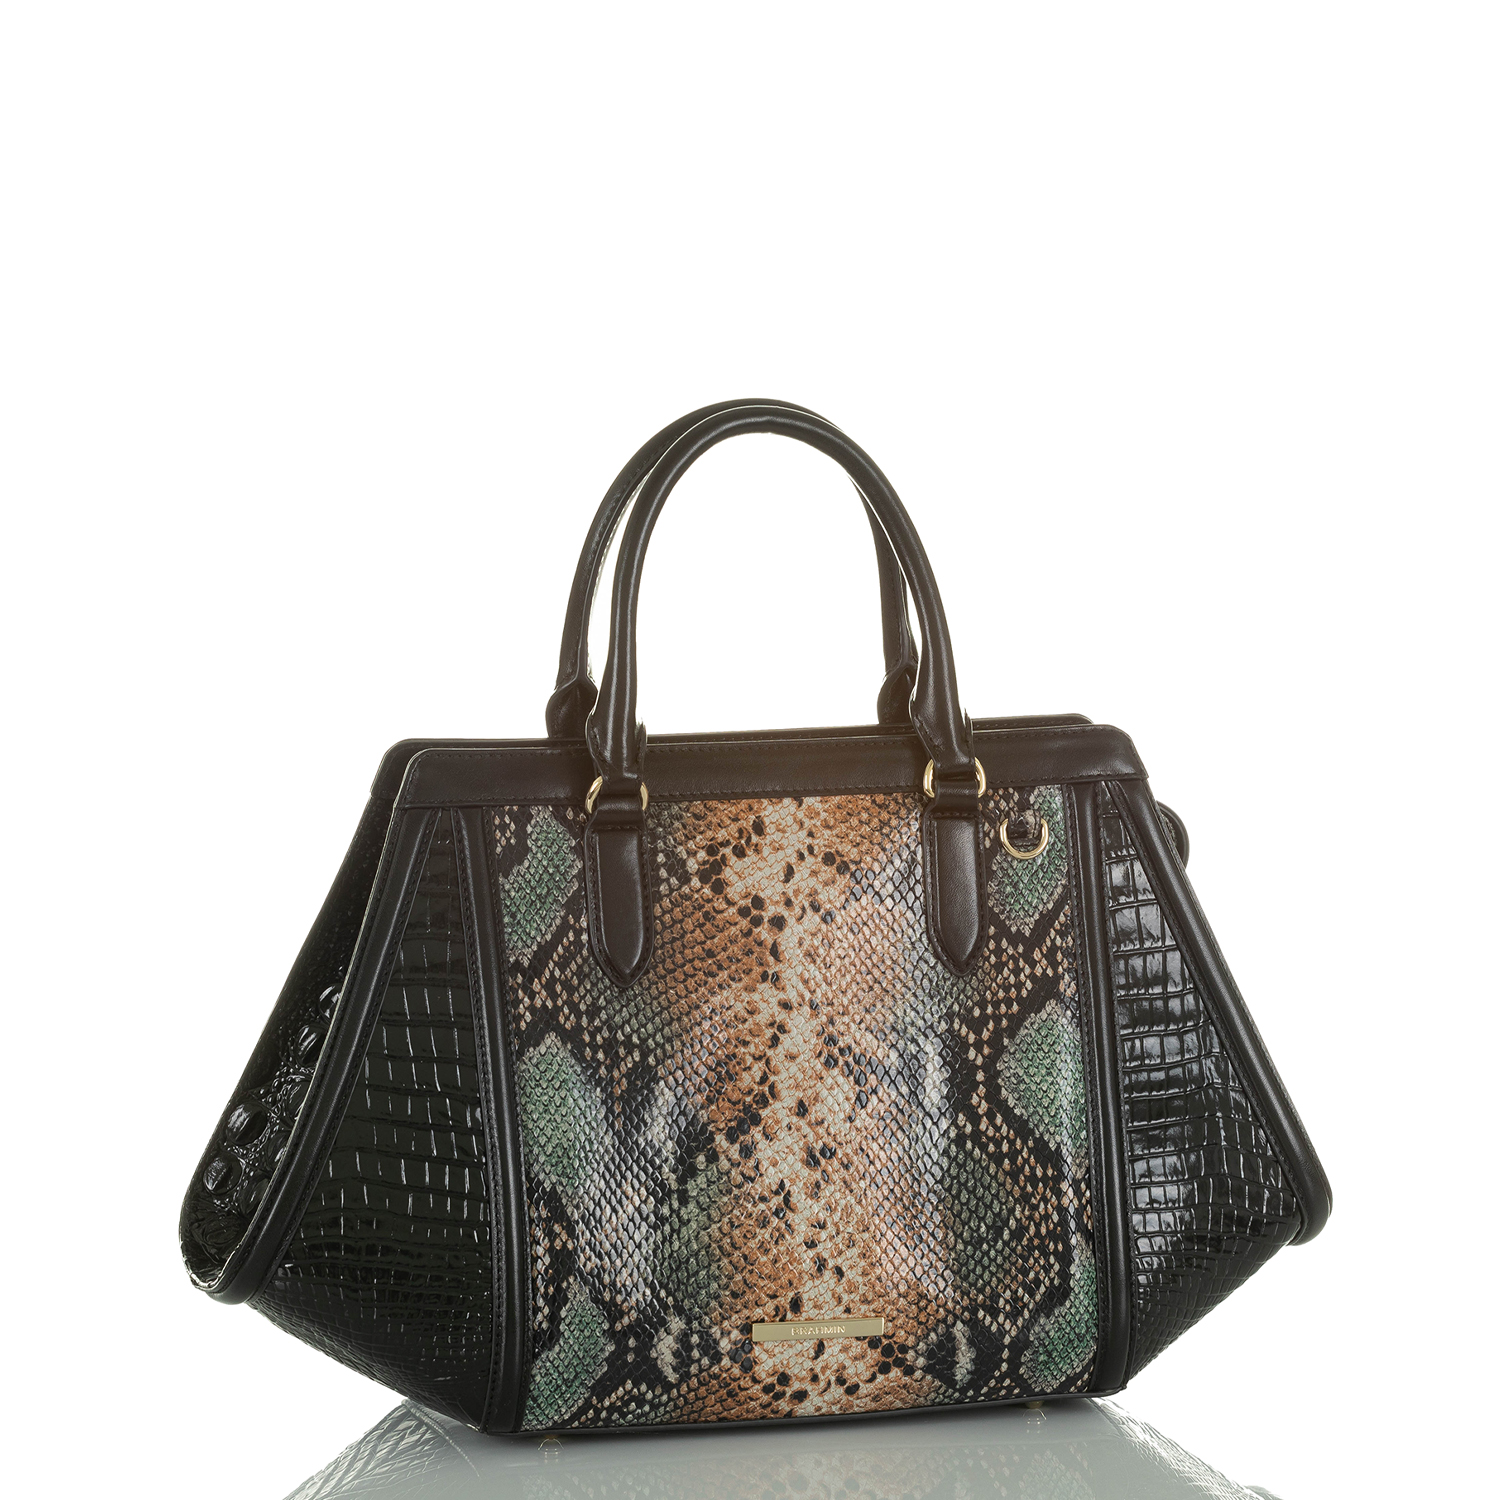 Arden Satchel Serpentine Patchouli